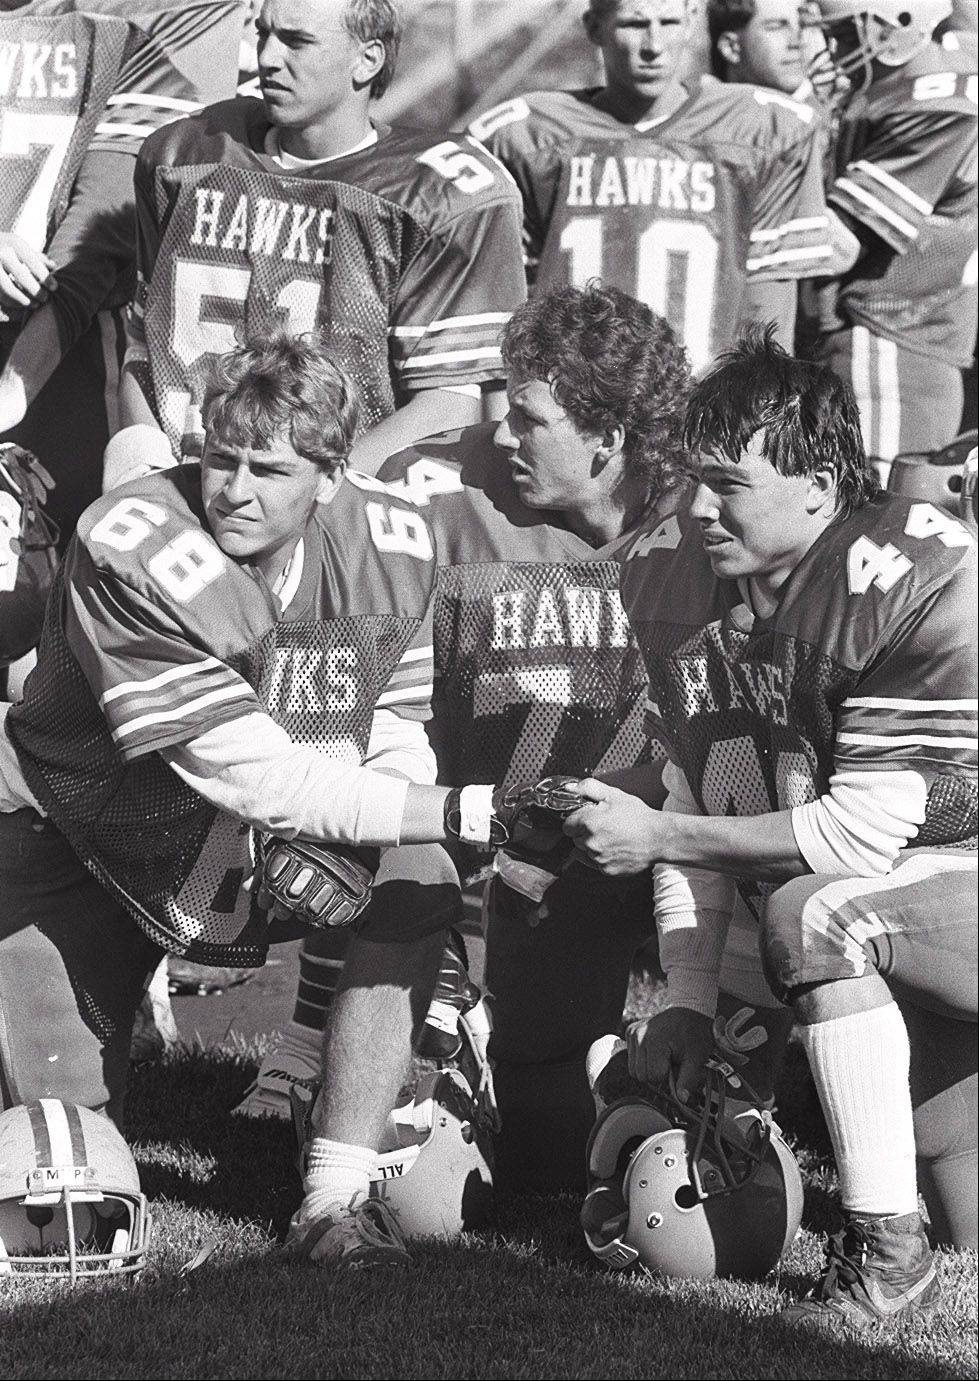 Hoffman Estates High School rallied against Elk Grove on Oct. 22, 1988, in a year in which the team didn't lose a single regular-season game. The team made it to the second round of the playoffs.